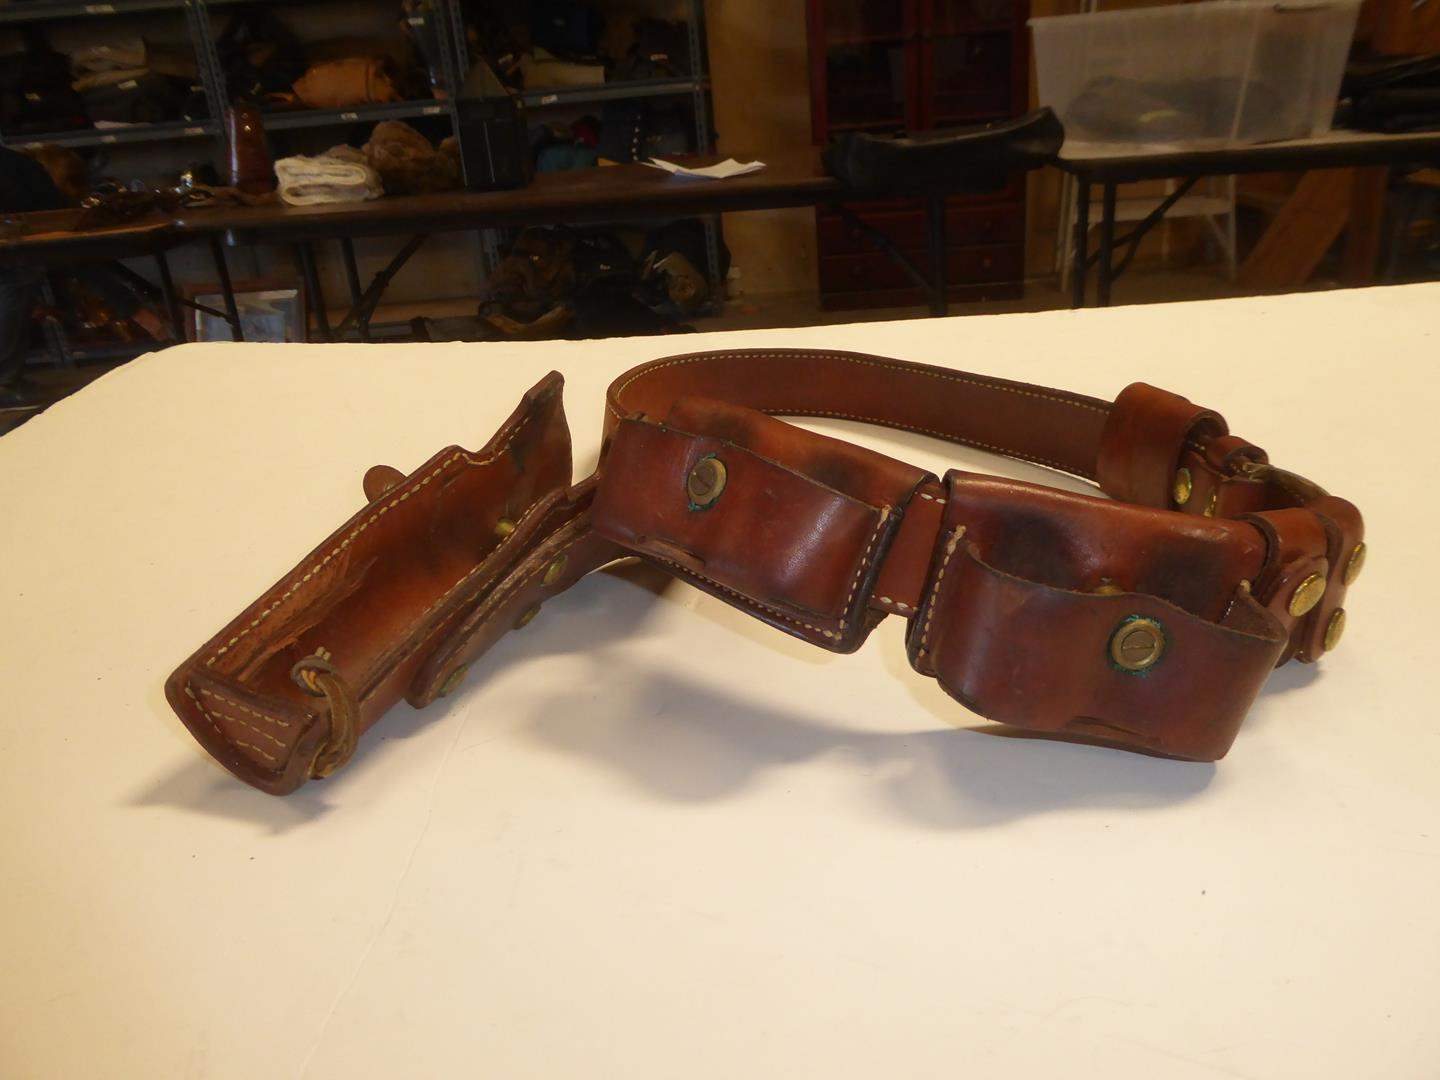 Lot # 108 - PPC Revolver 38 Holster & Speed Loaders (main image)